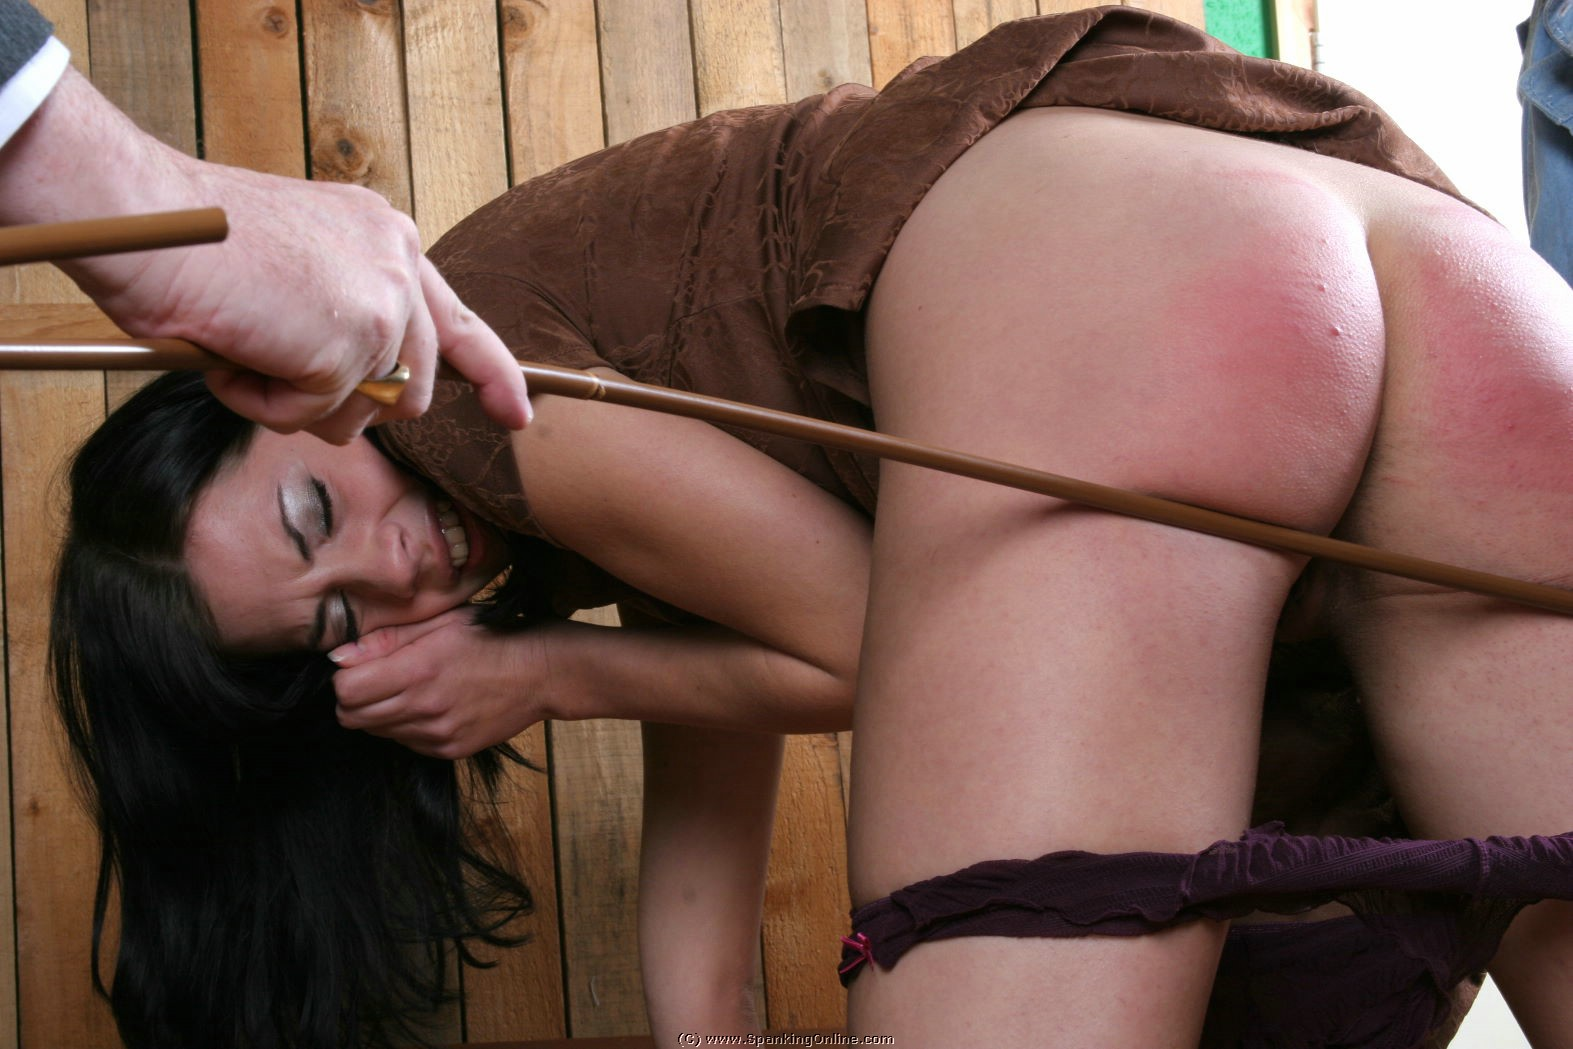 Whipping Punishment Severe Porn Pics